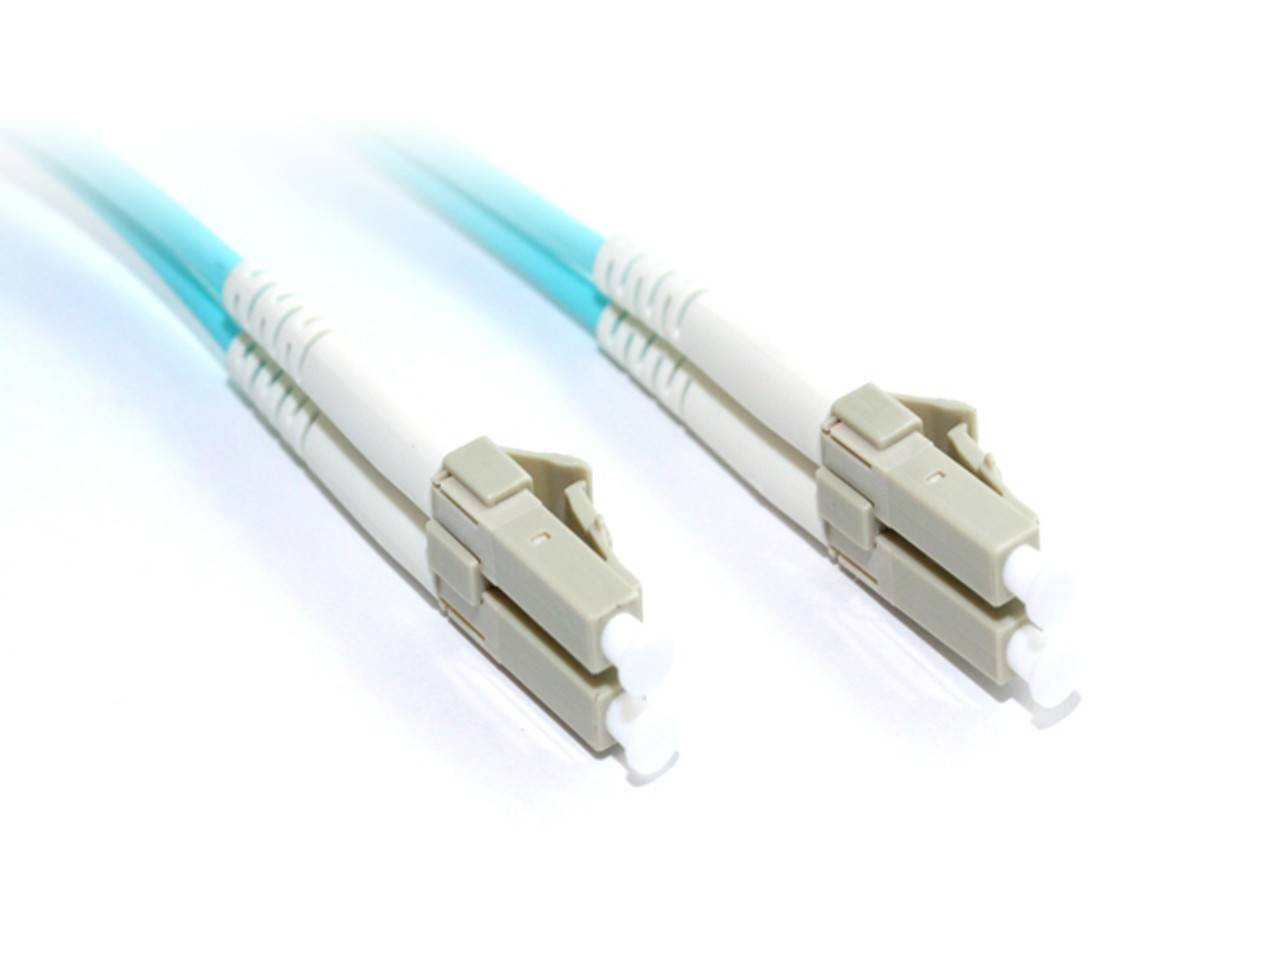 Product image for 3M OM4 LC-LC M/M Duplex Fibre Cable | CX Computer Superstore